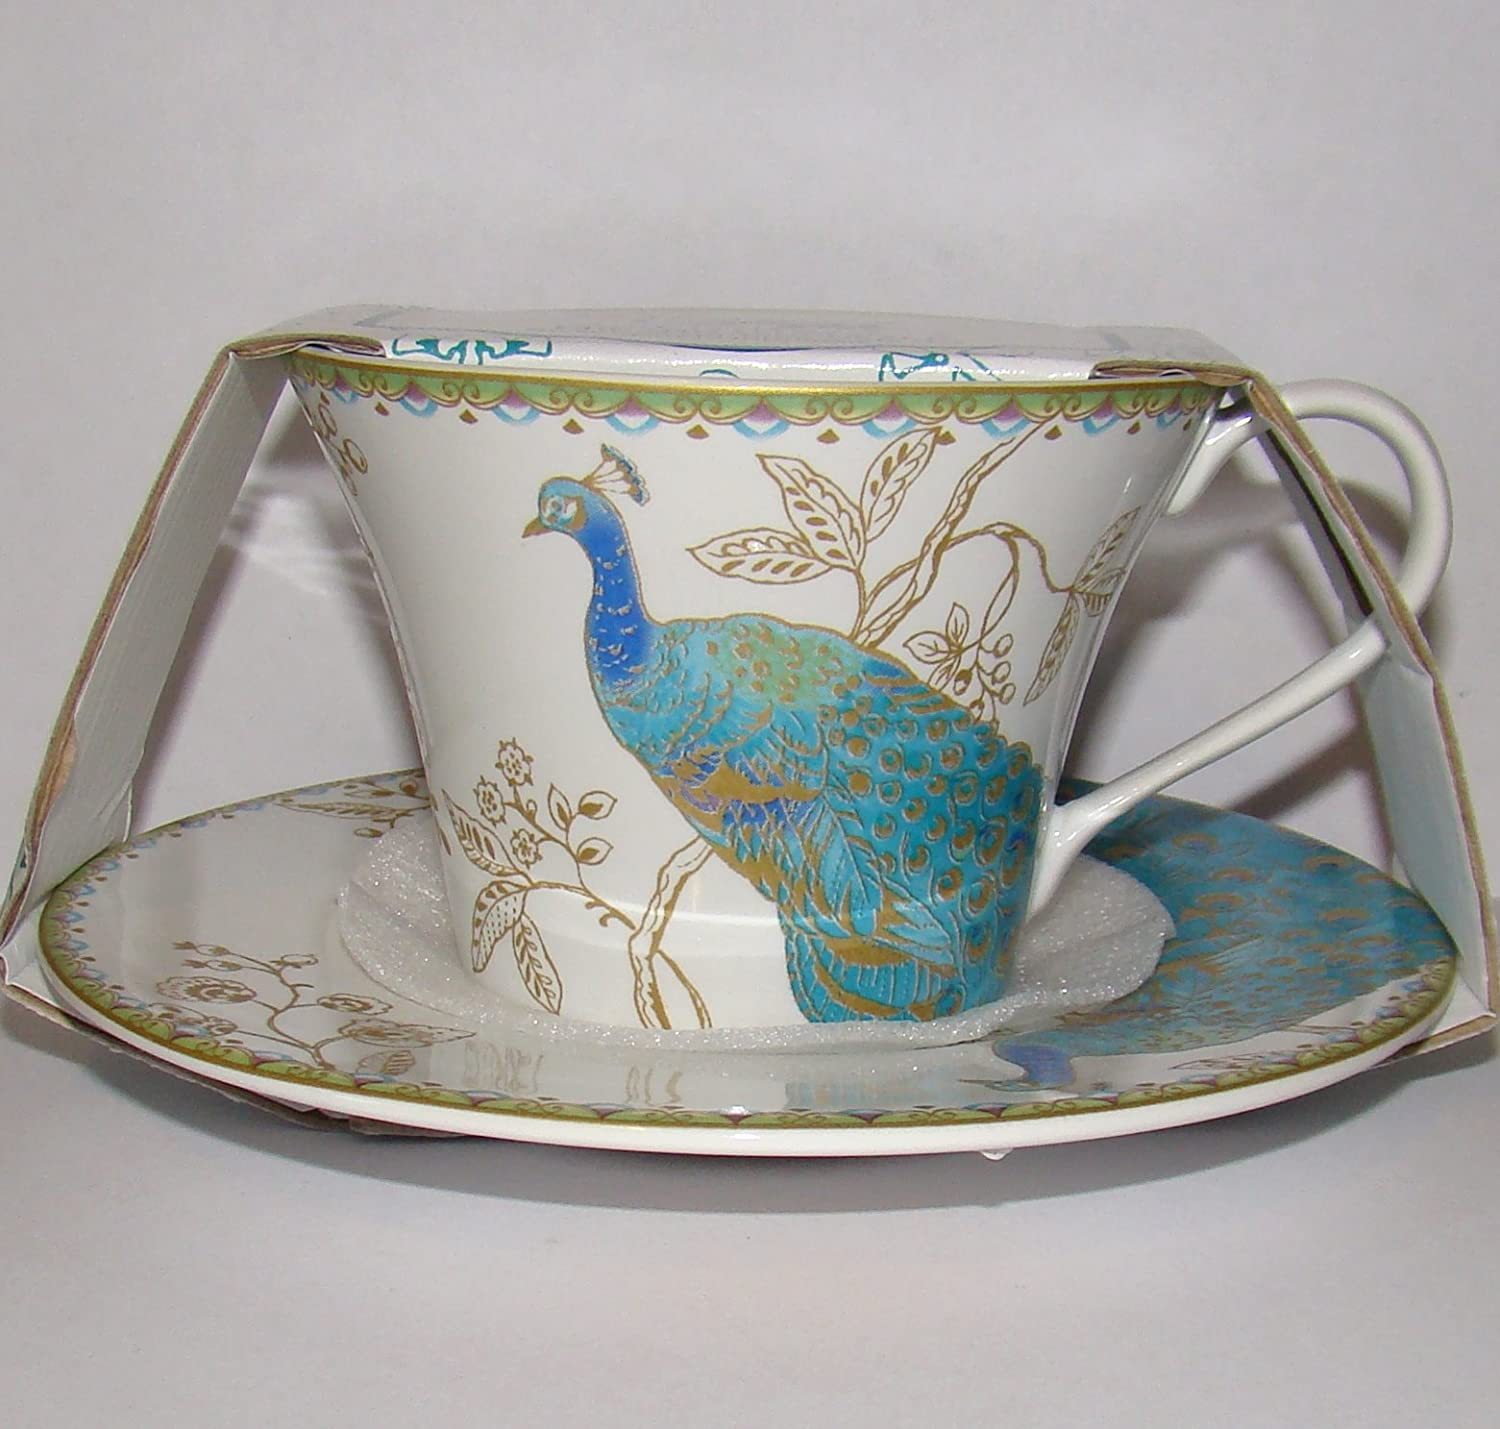 222 Fifth Peacock Garden Cup & Saucer For Coffee or Tea Fine China Tableware SYNCHKG067992